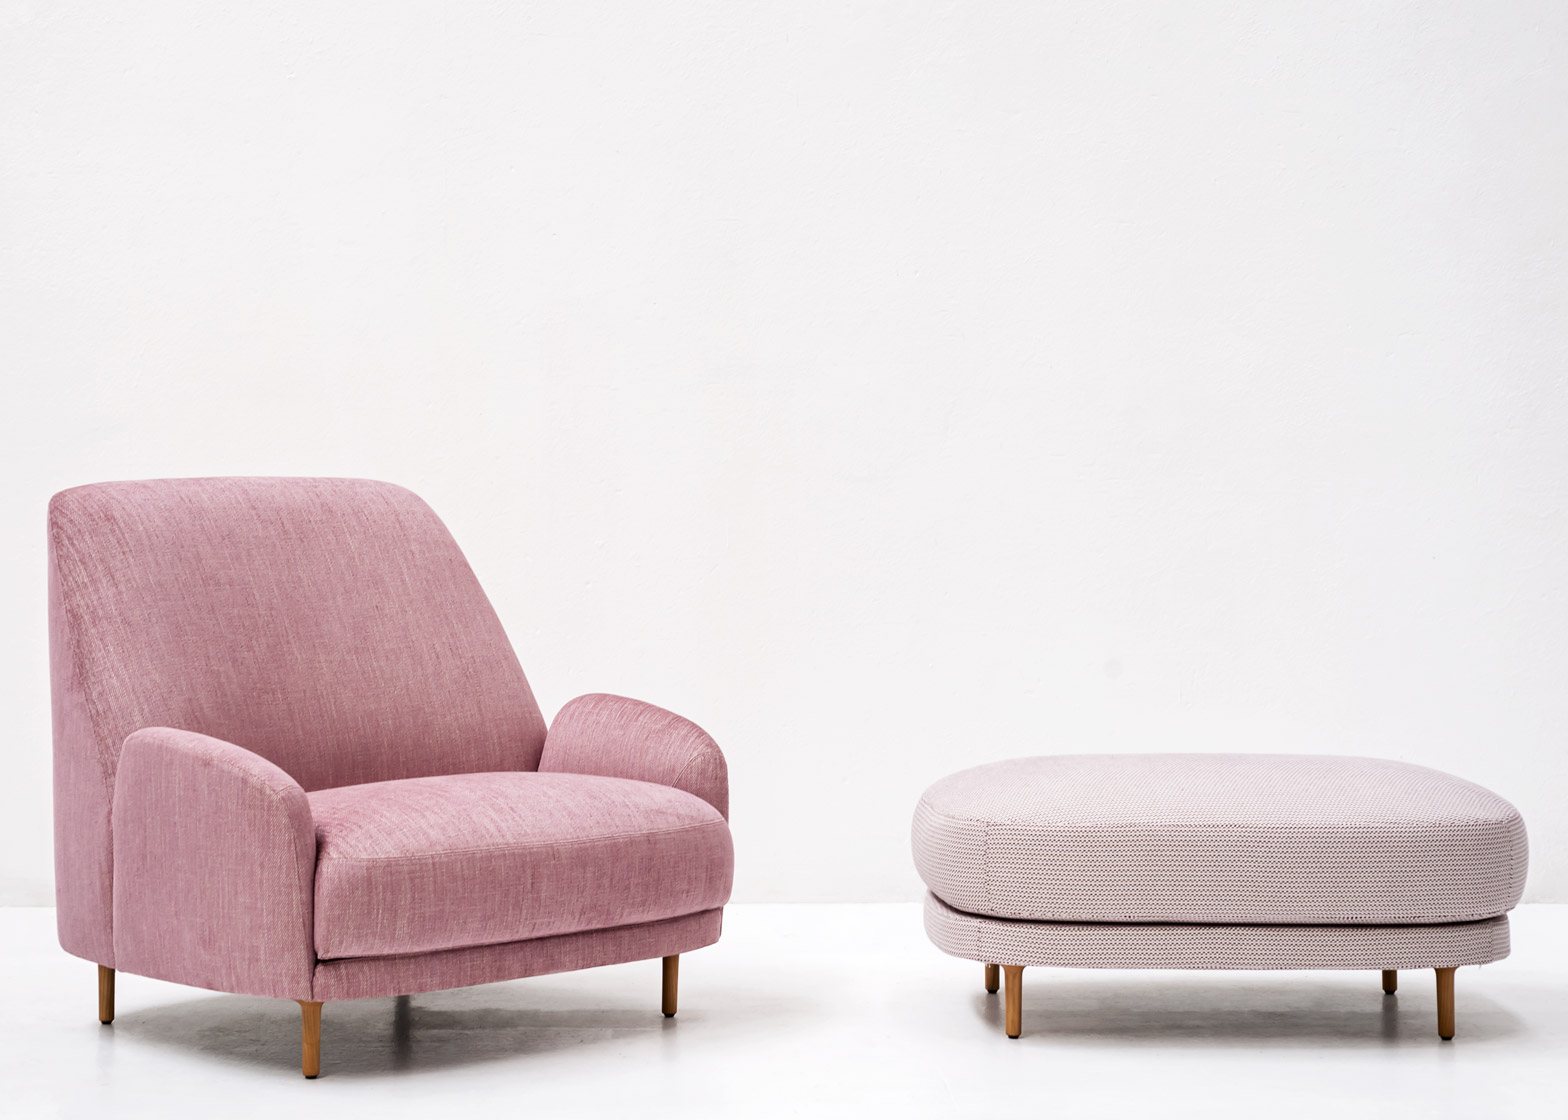 New range of sofas designed by Claesson Koivisto Rune for Tachinni